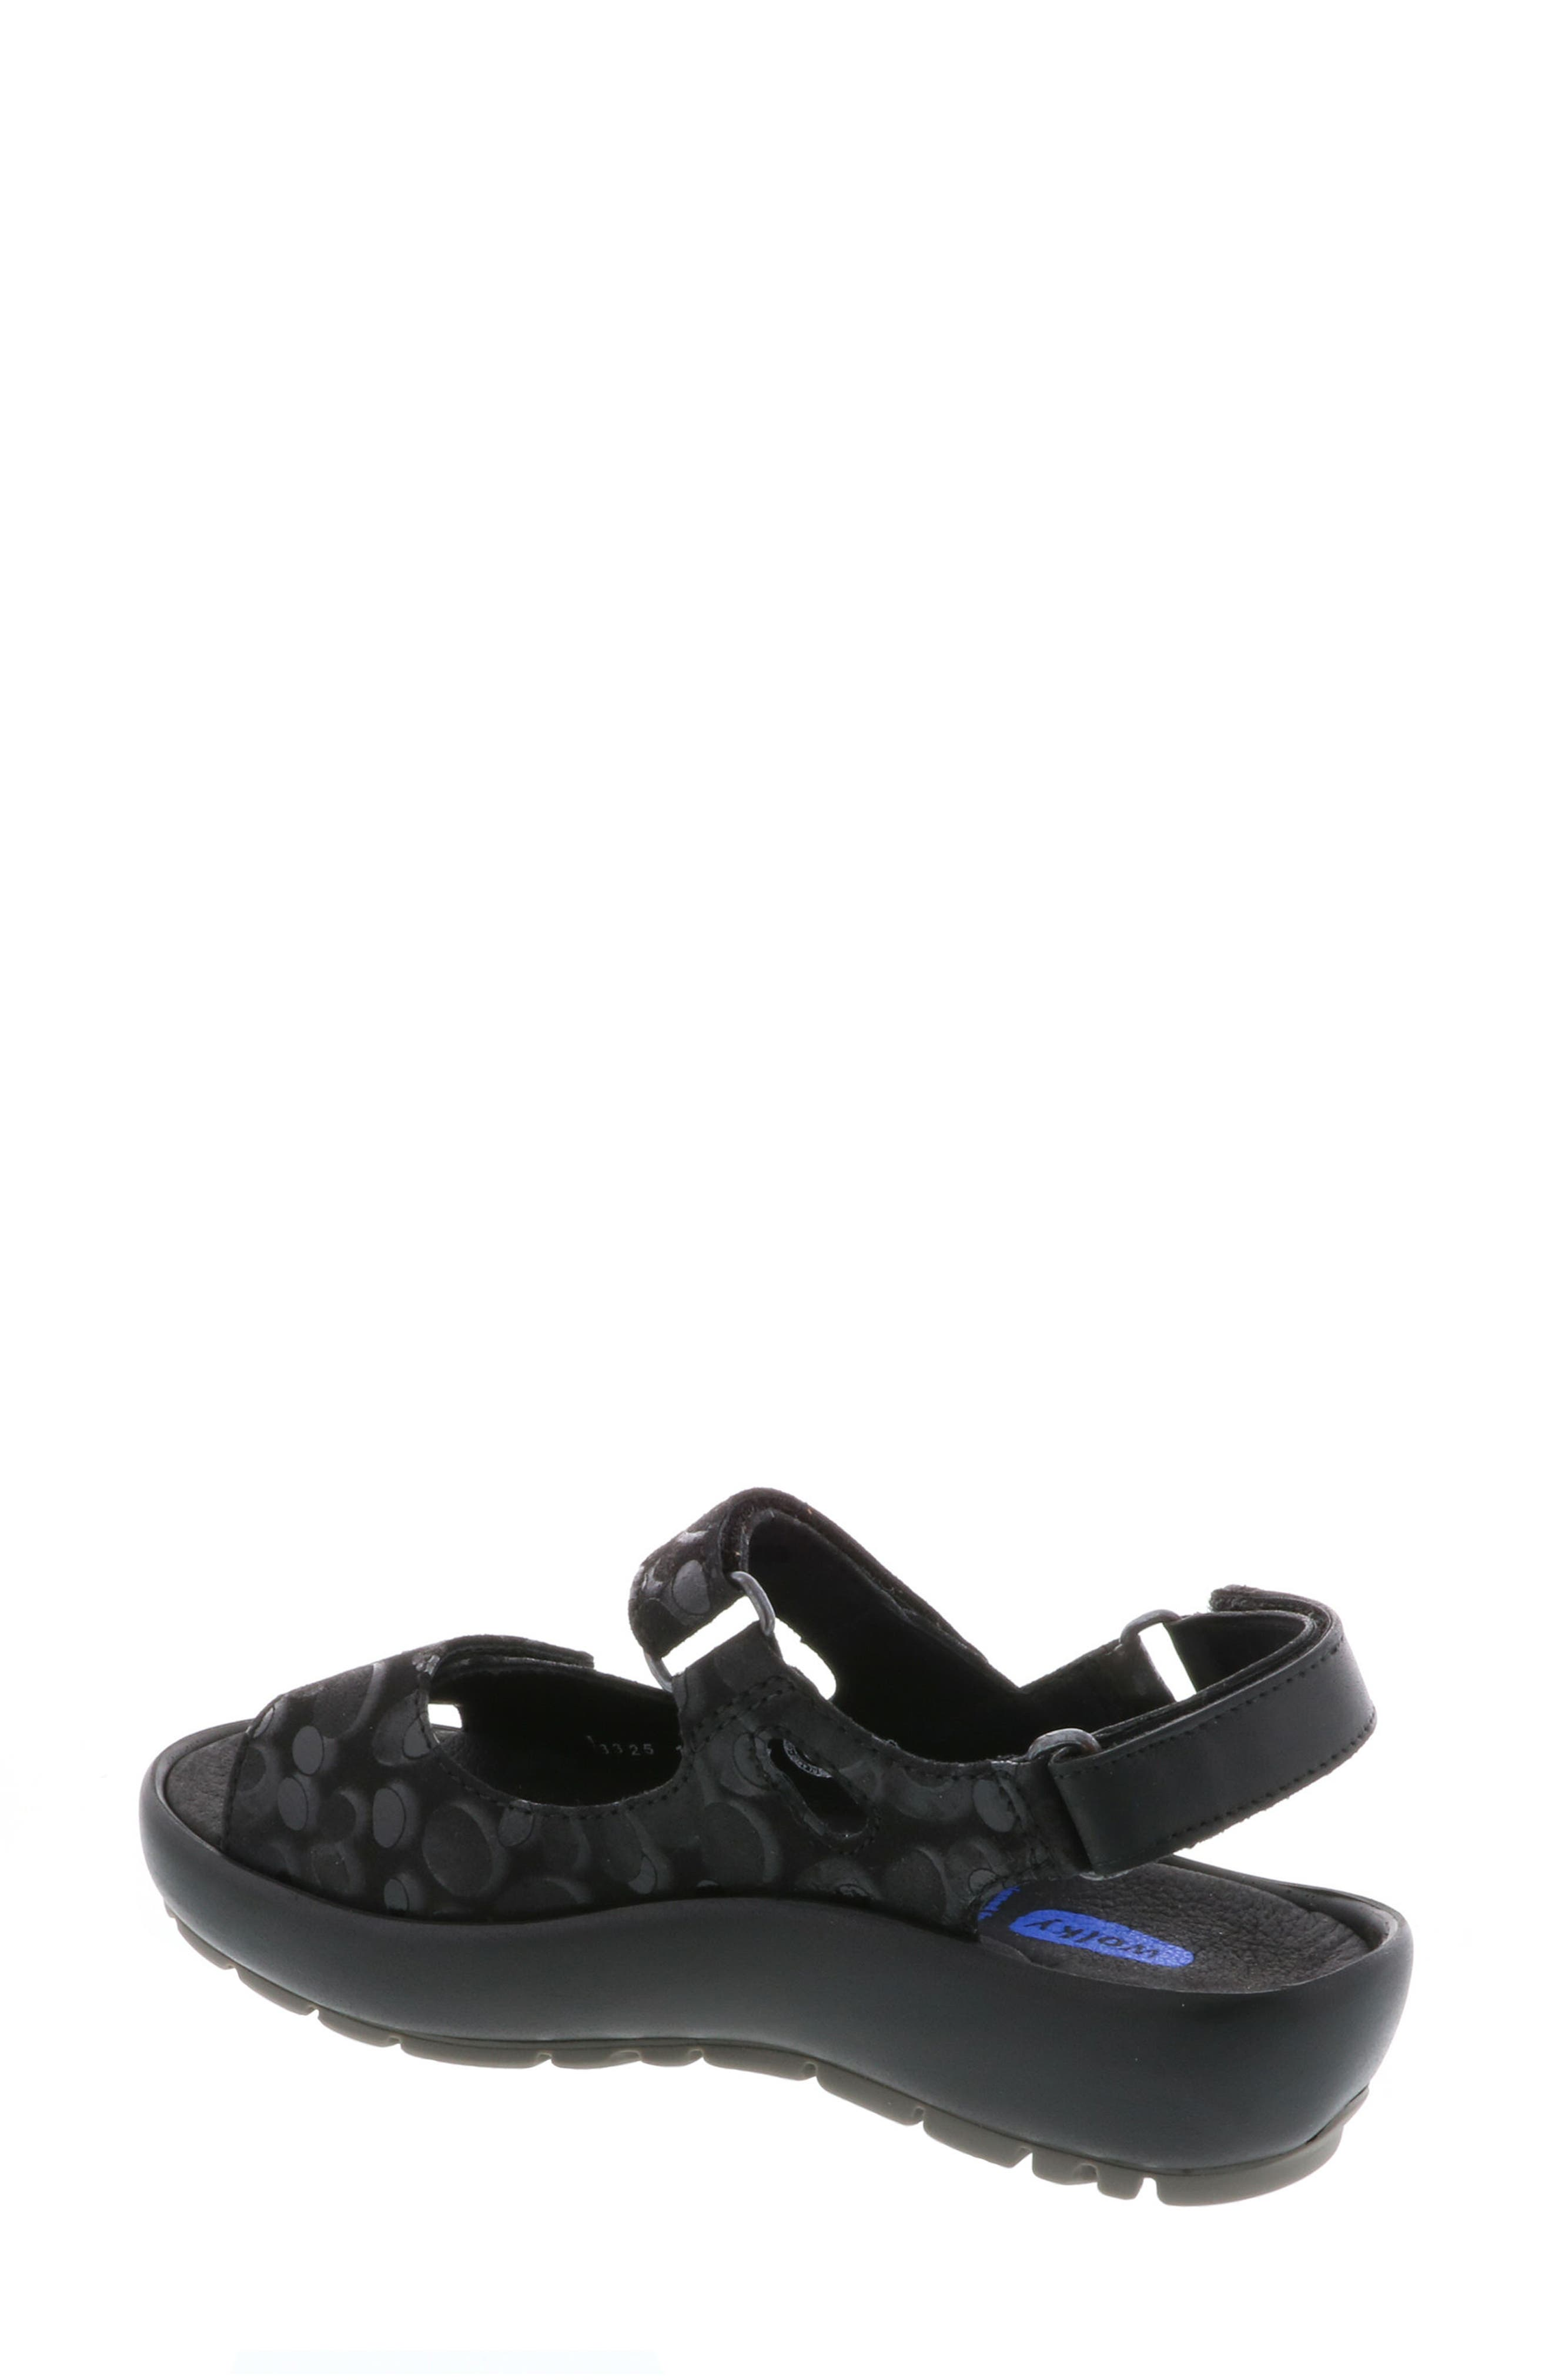 Rio Sandal,                             Alternate thumbnail 2, color,                             BLACK CIRCLE PRINT